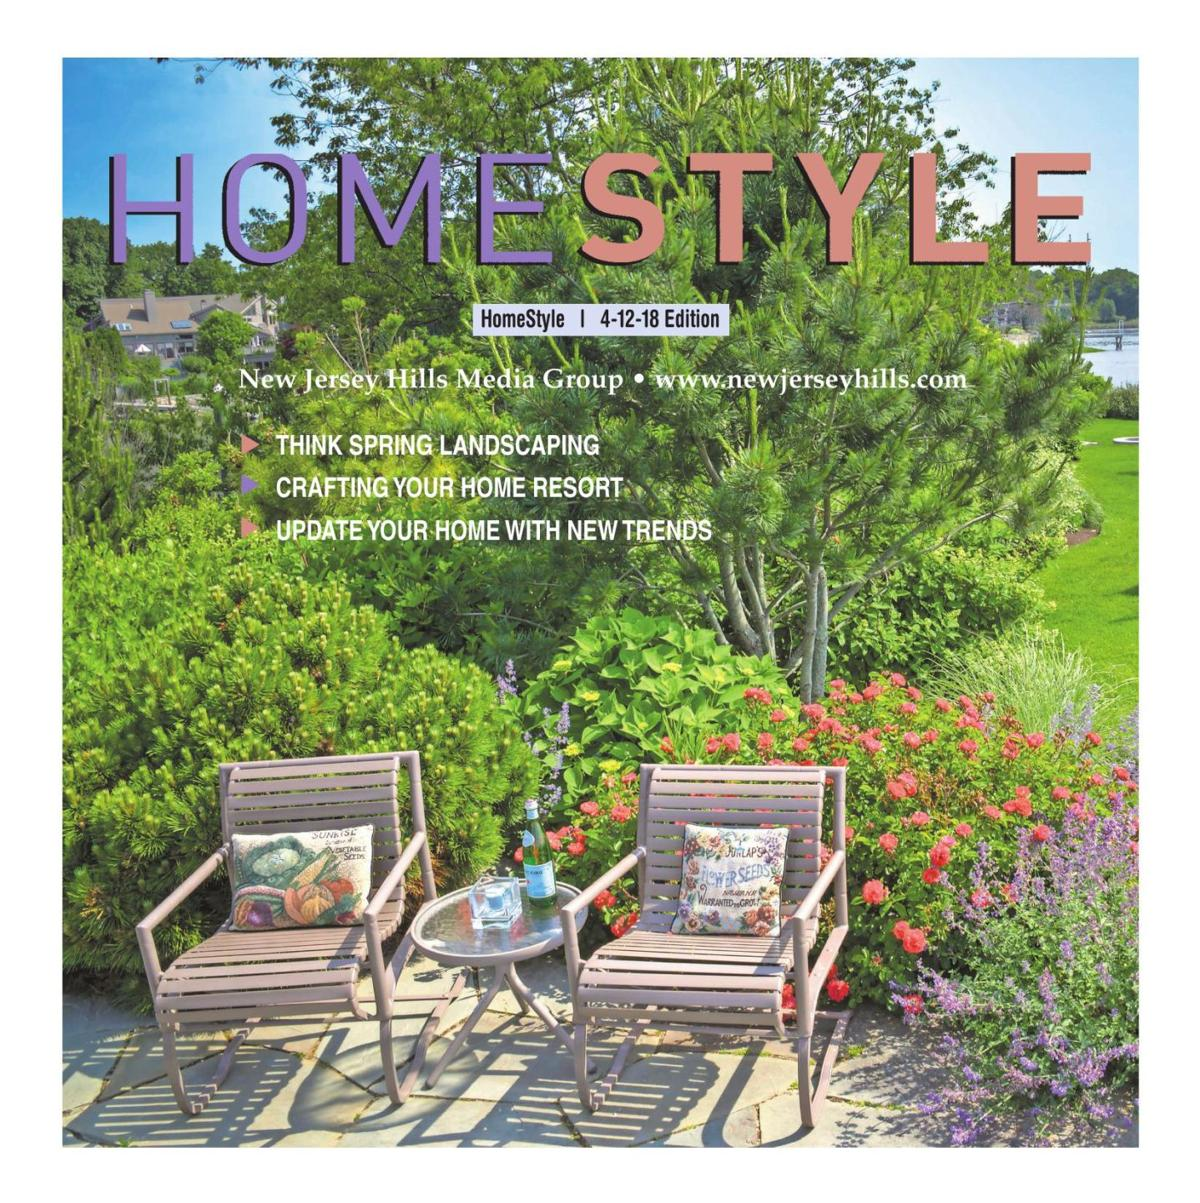 Homestyle - April 12, 2018